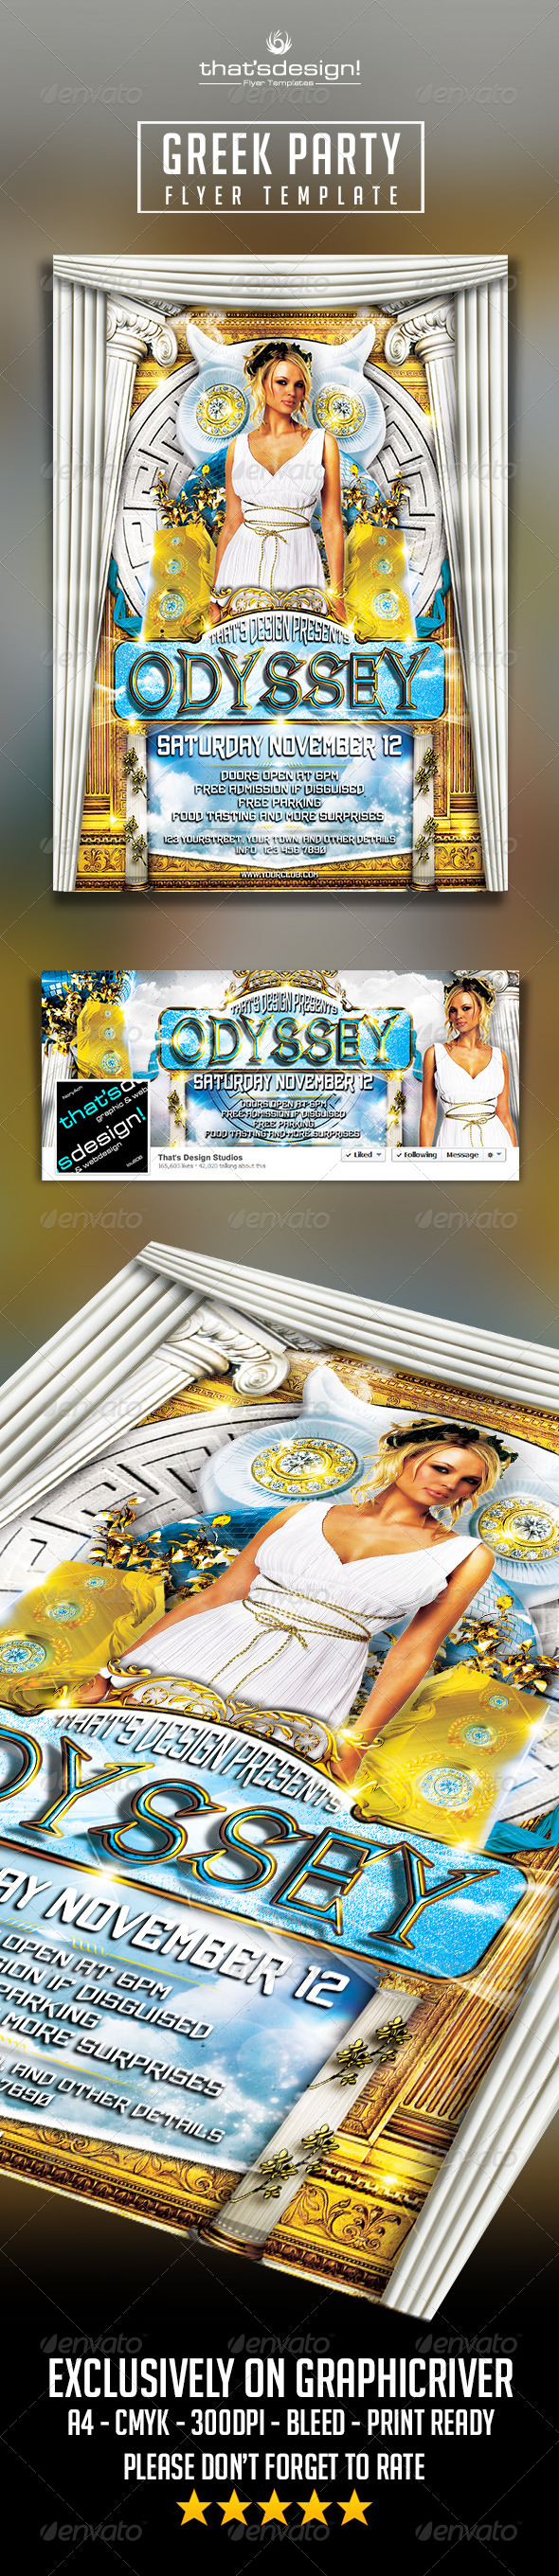 Greek Party Flyer Template - Clubs & Parties Events